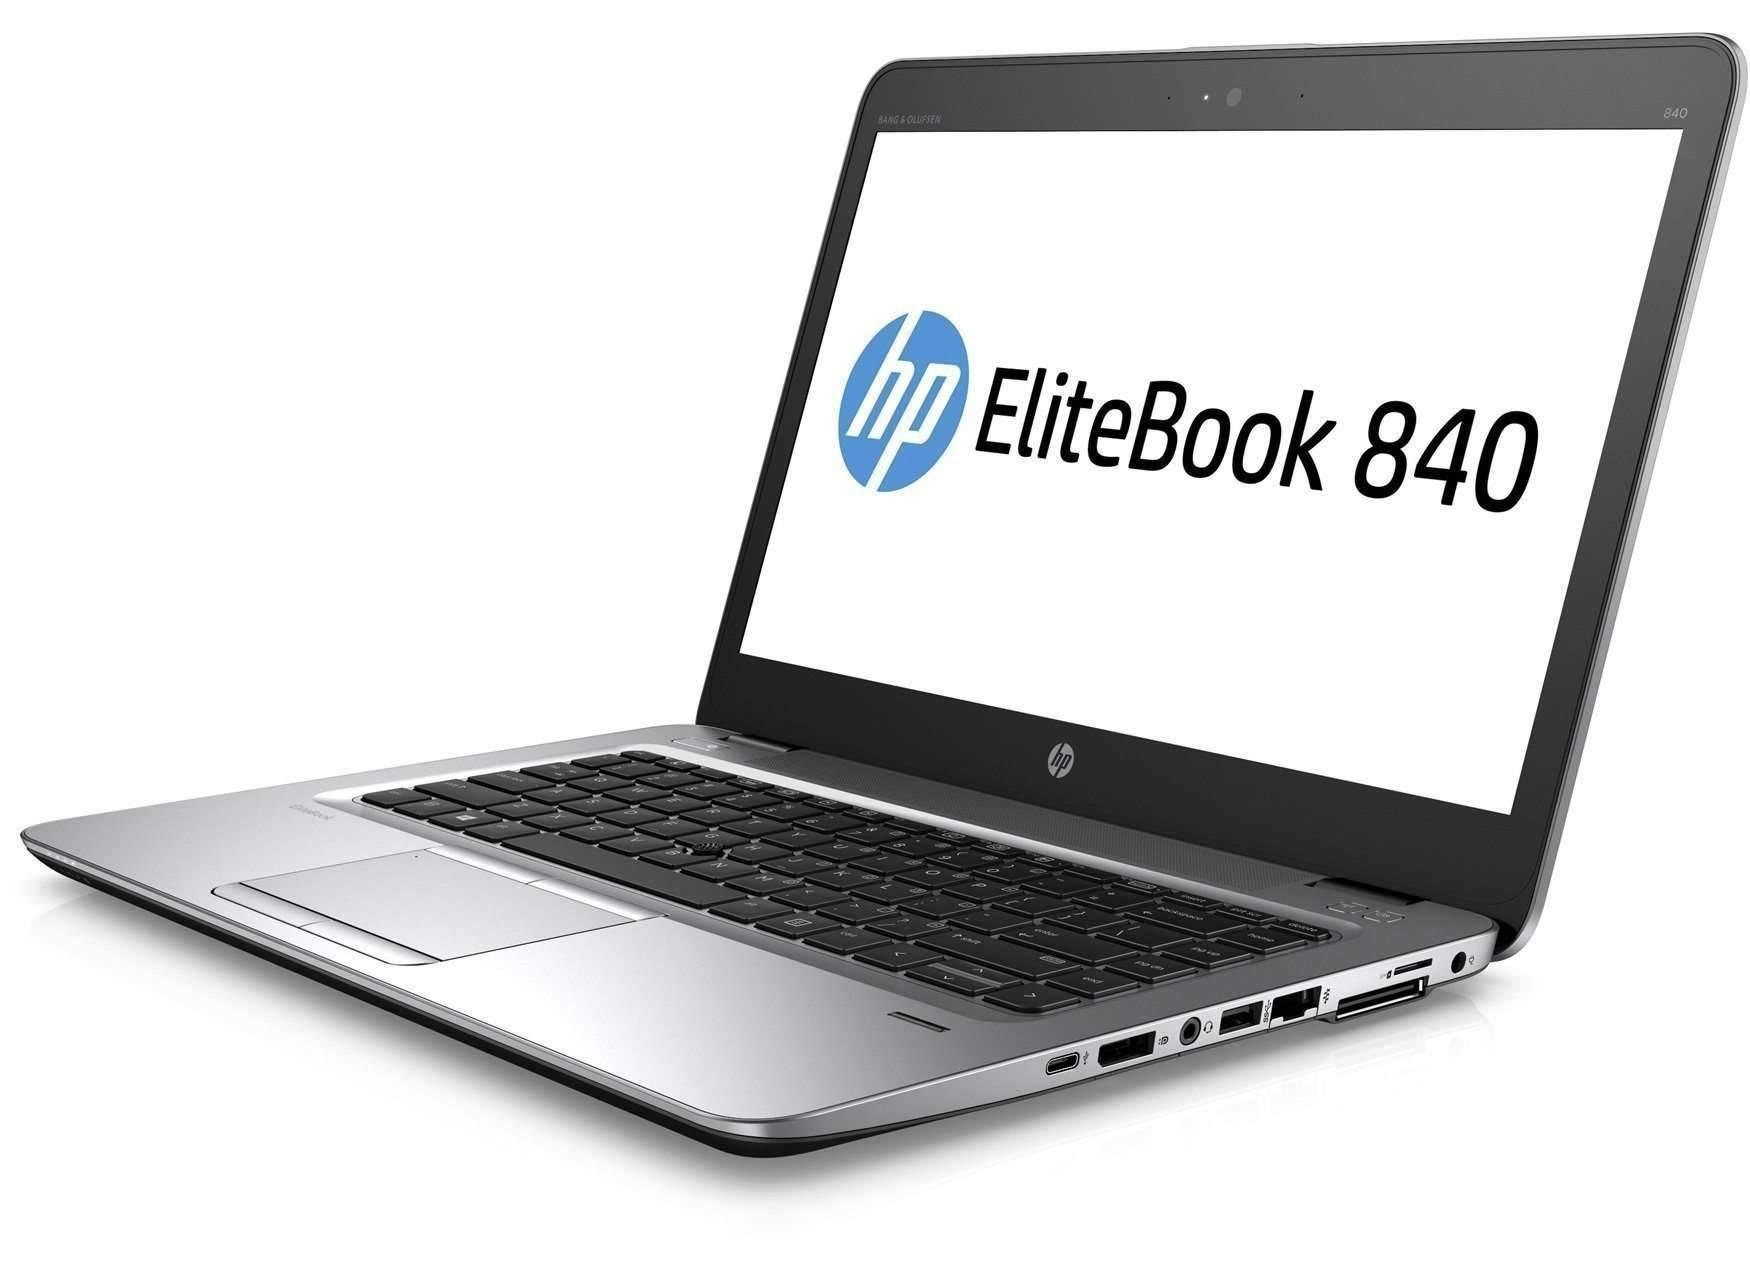 "Portable Business Setup!!! HP Elitebook 840 G3 i7 6th Gen, 8GB RAM, 256GB SSD, Windows 10 Includes : 24"" Brand New 24"" Monitor, HP UltraSlim Docking Station, Wired Keyboard and Mouse"